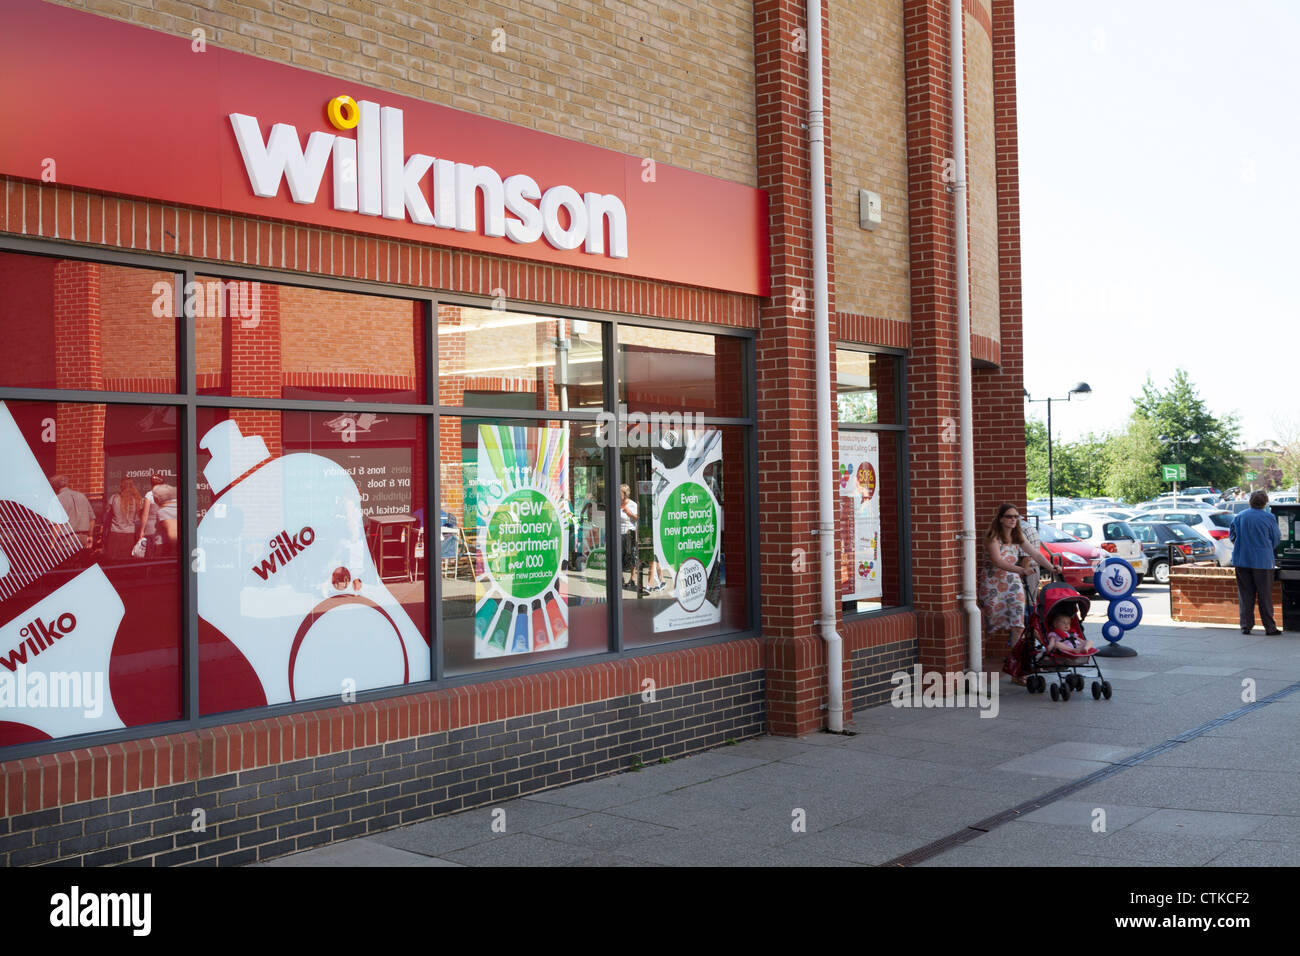 Wilkinsons shop front in city - Stock Image